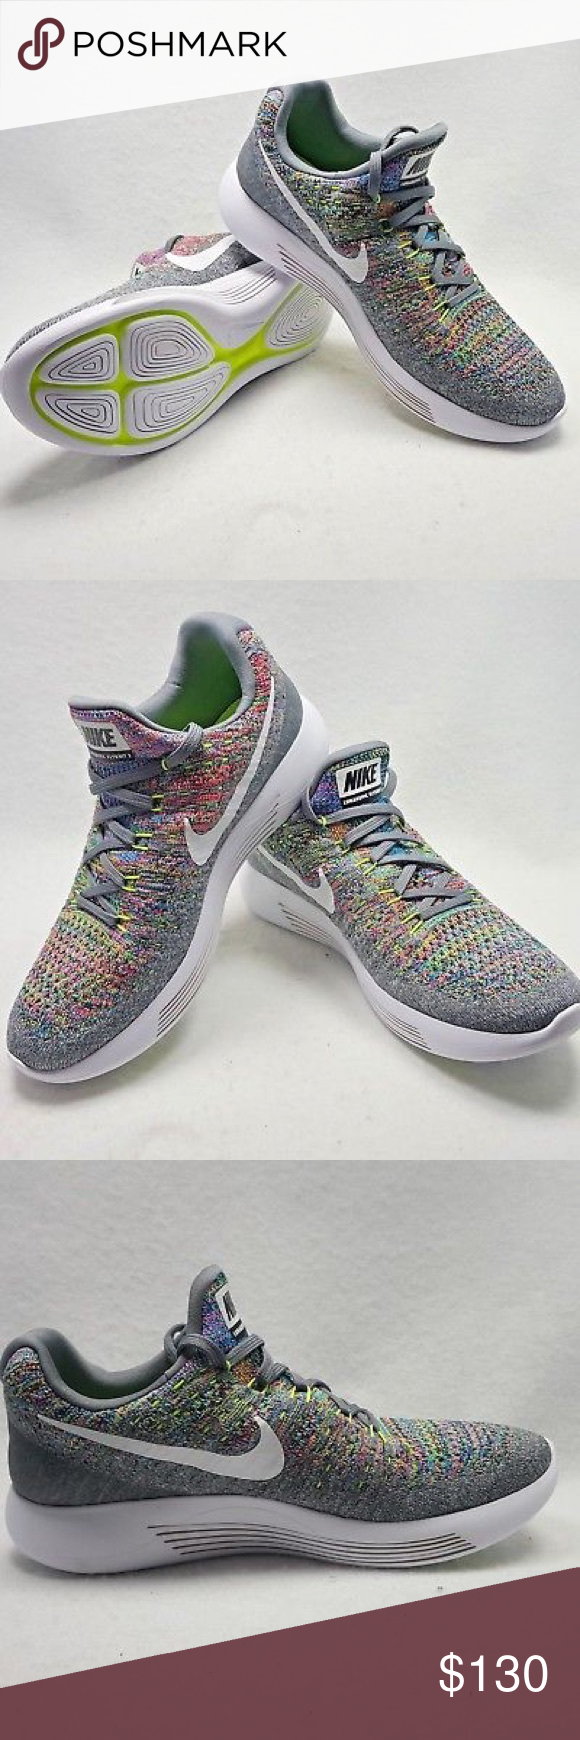 Nike LunarEpic Low Flyknit 2 Women s Multi-color  New without tags. Ships  without a59bd0183e